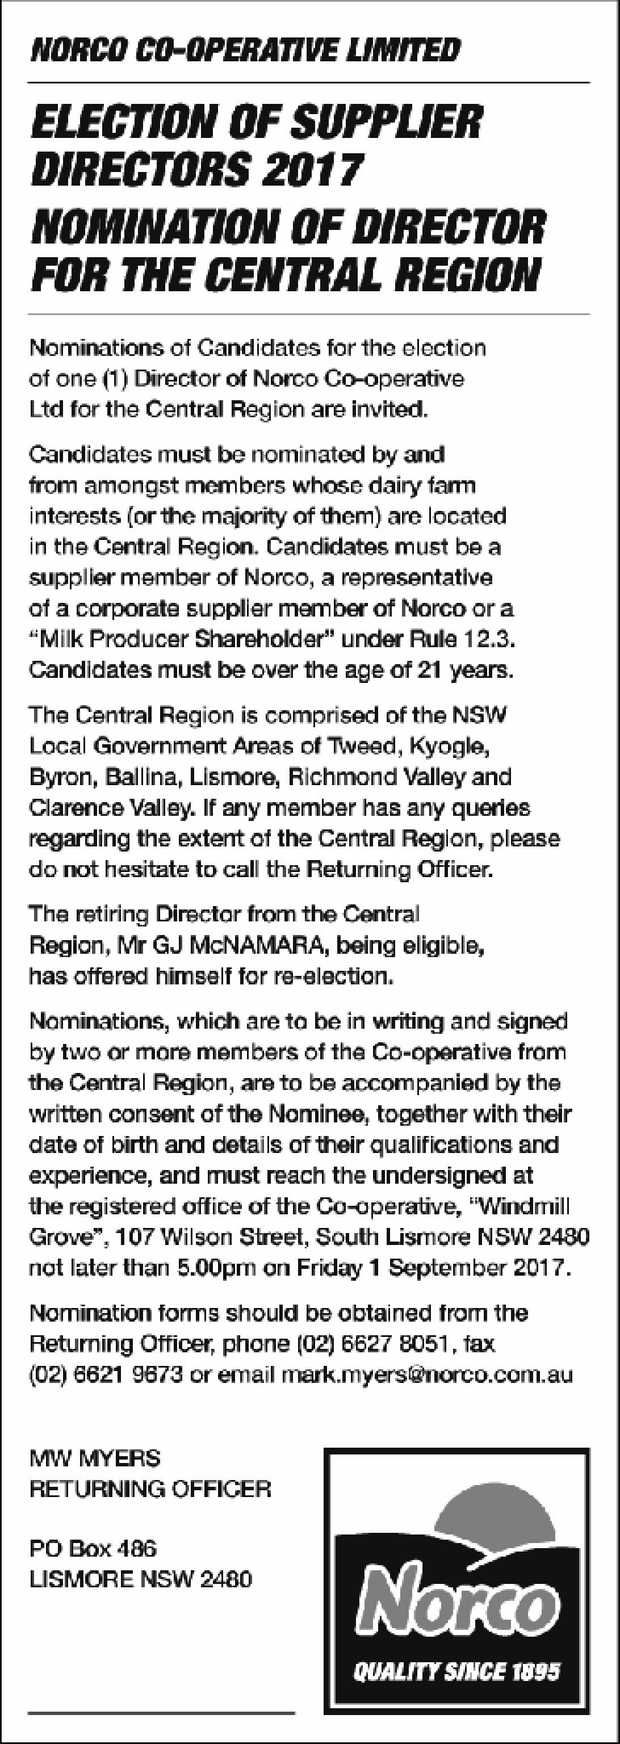 NORCO CO-OPERATIVE LIMITED ELECTION OF SUPPLIER DIRECTORS 2017 NOMINATION OF DIRECTOR FOR THE CEN...